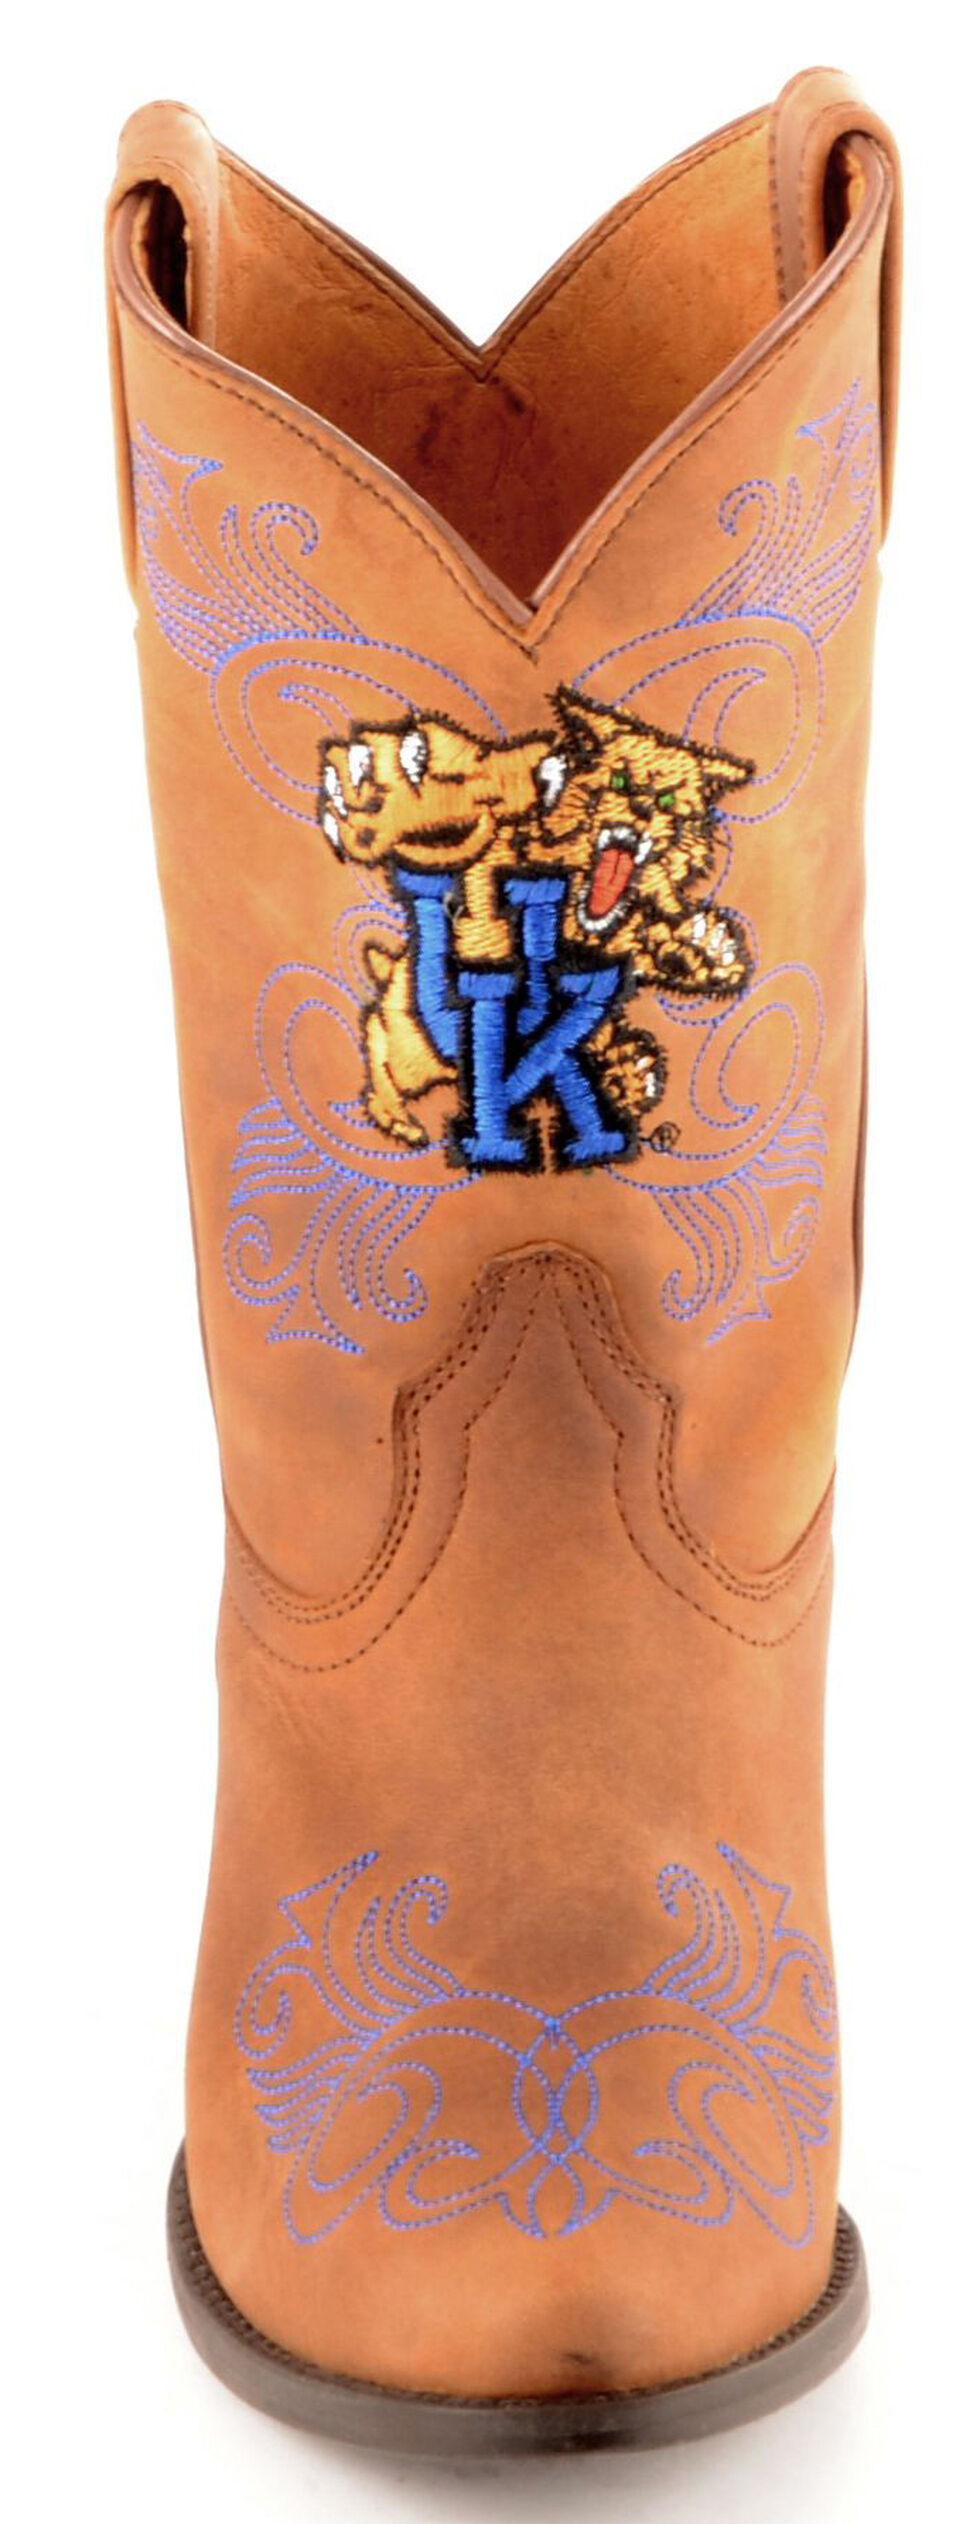 Gameday Boots Girls' University of Kentucky Western Boots - Medium Toe, Honey, hi-res